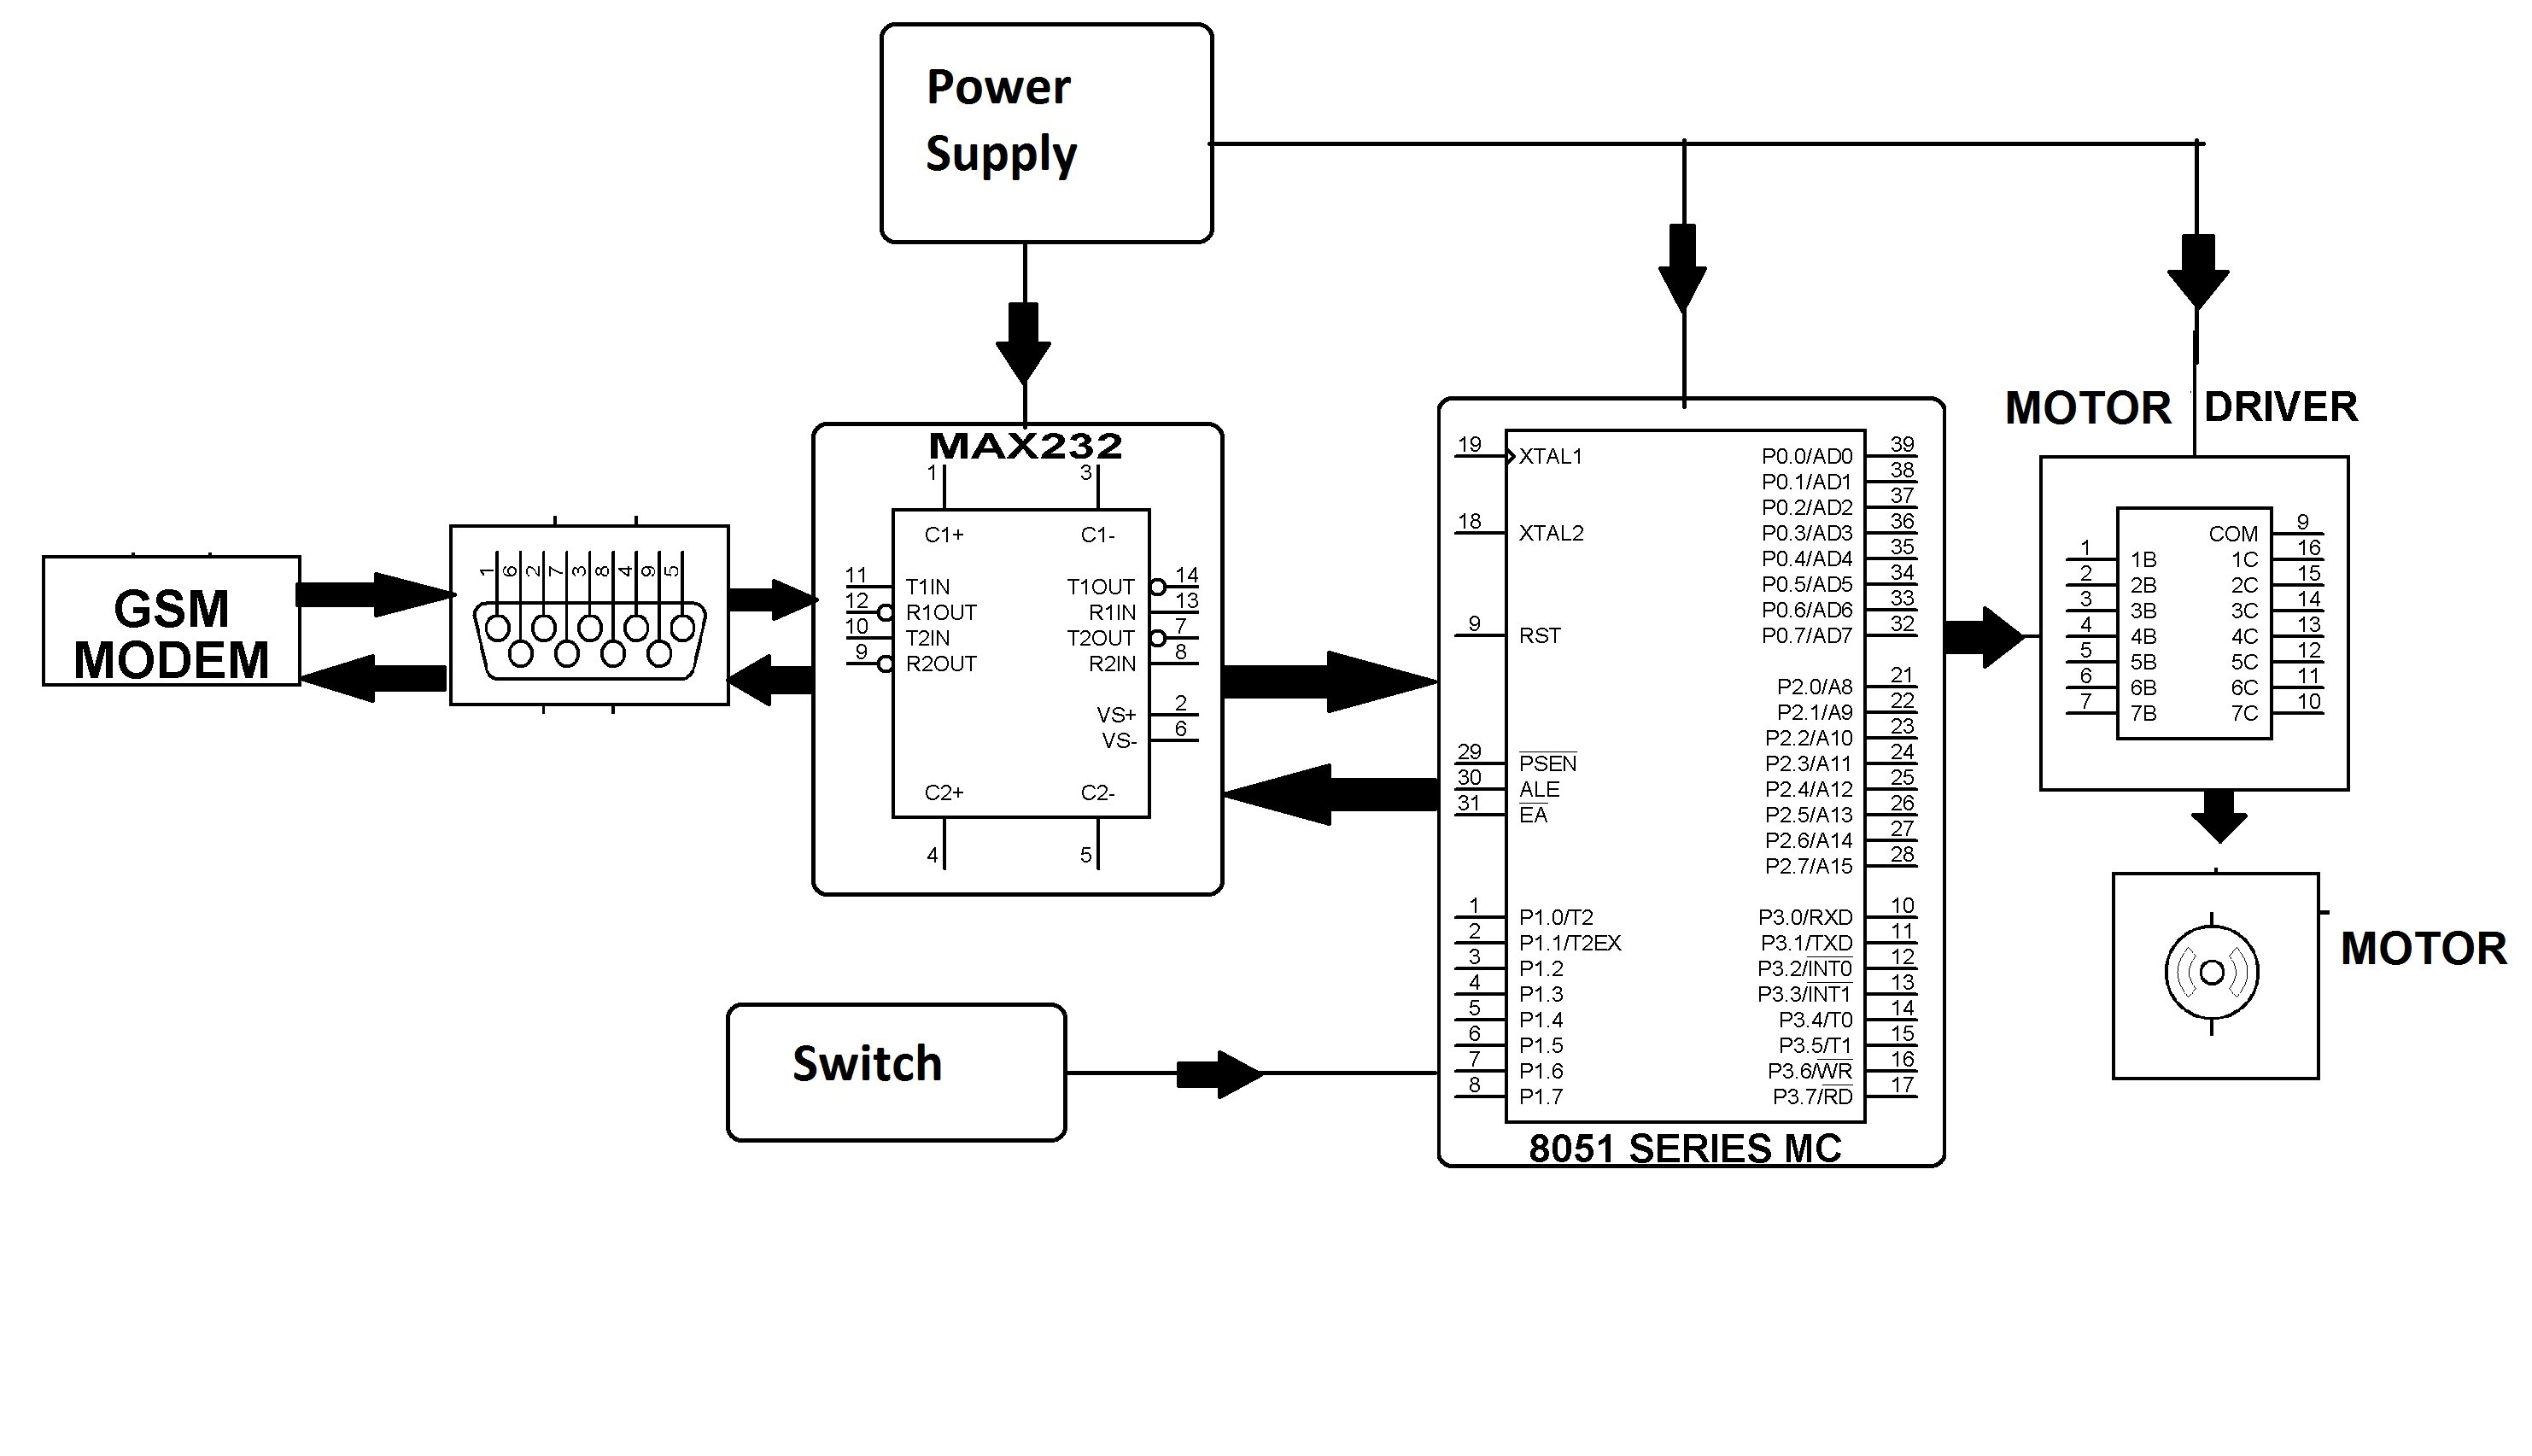 Diagram Of Car Lock Diagram Engine Vehicle theft Detection Notification and Remote Of Diagram Of Car Lock